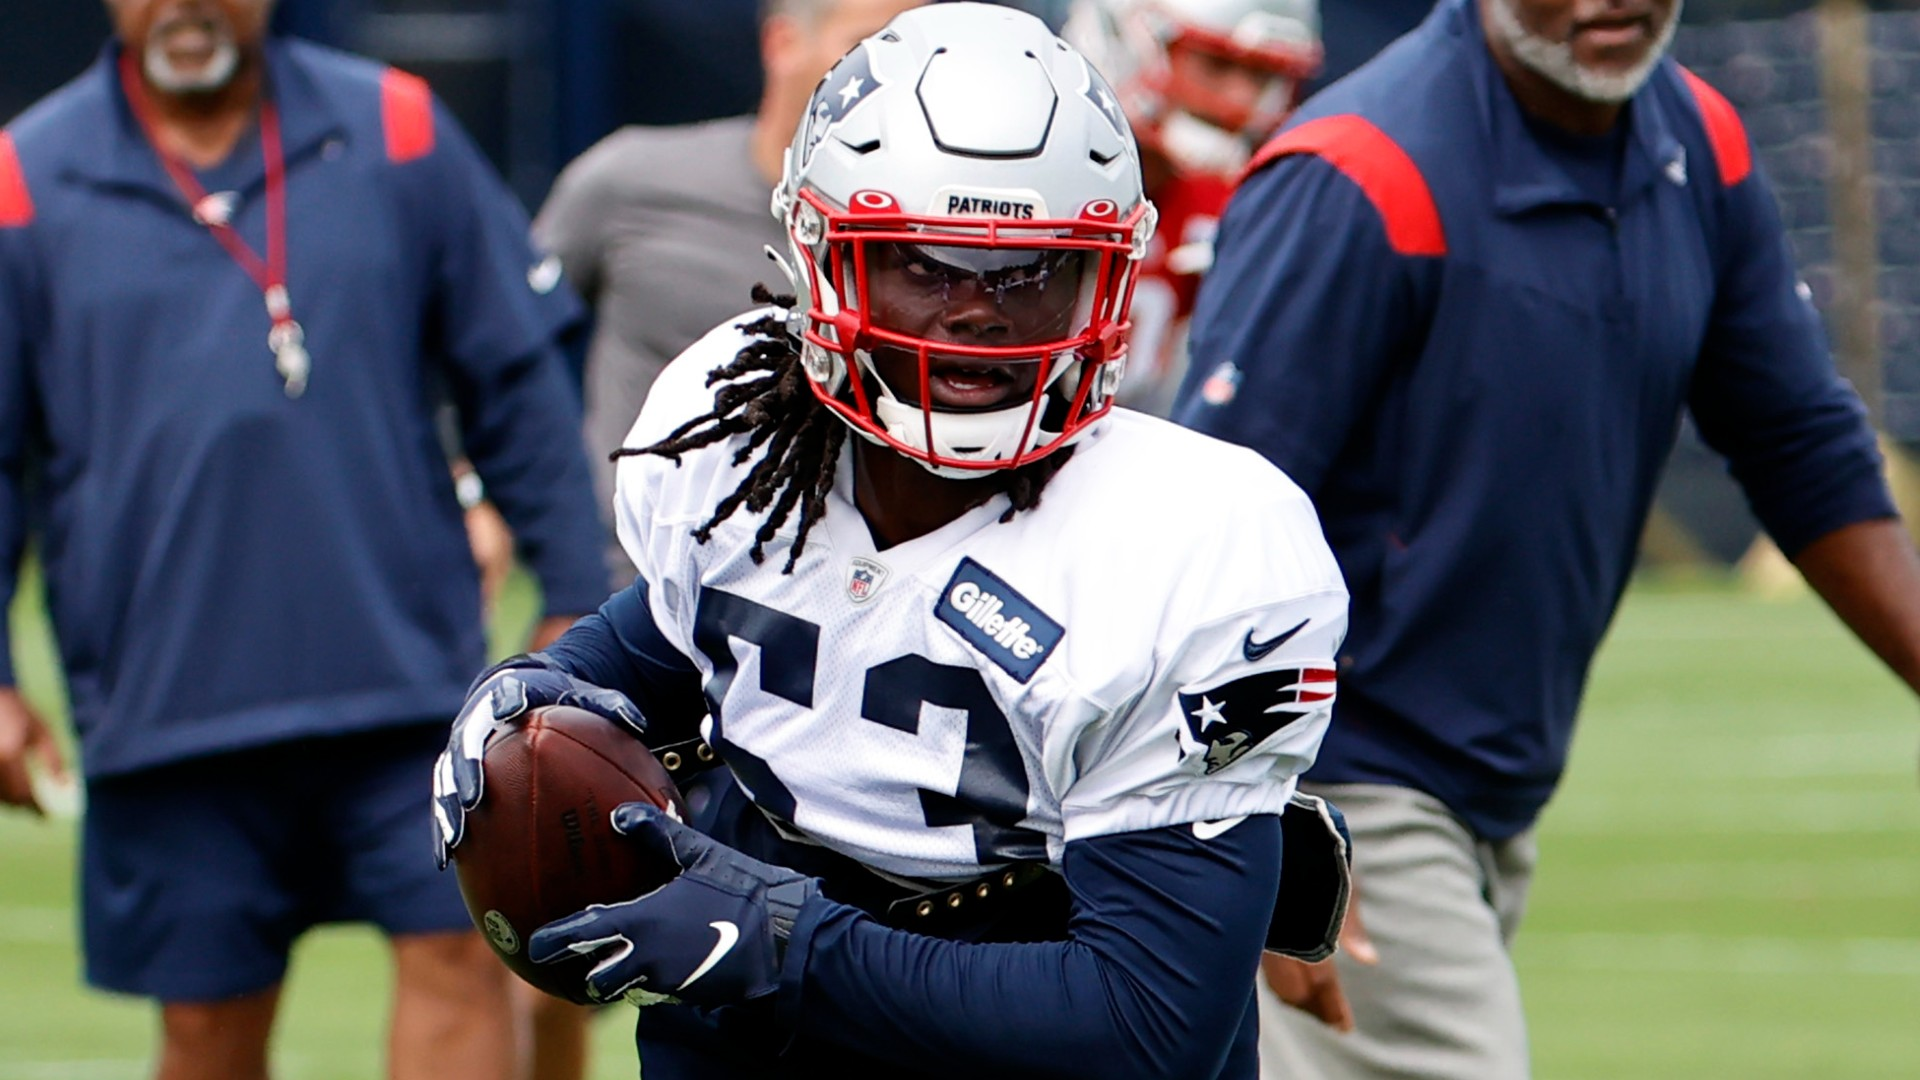 Why Patriots' Rhamondre Stevenson may have trouble earning carries despite strong preseason debut